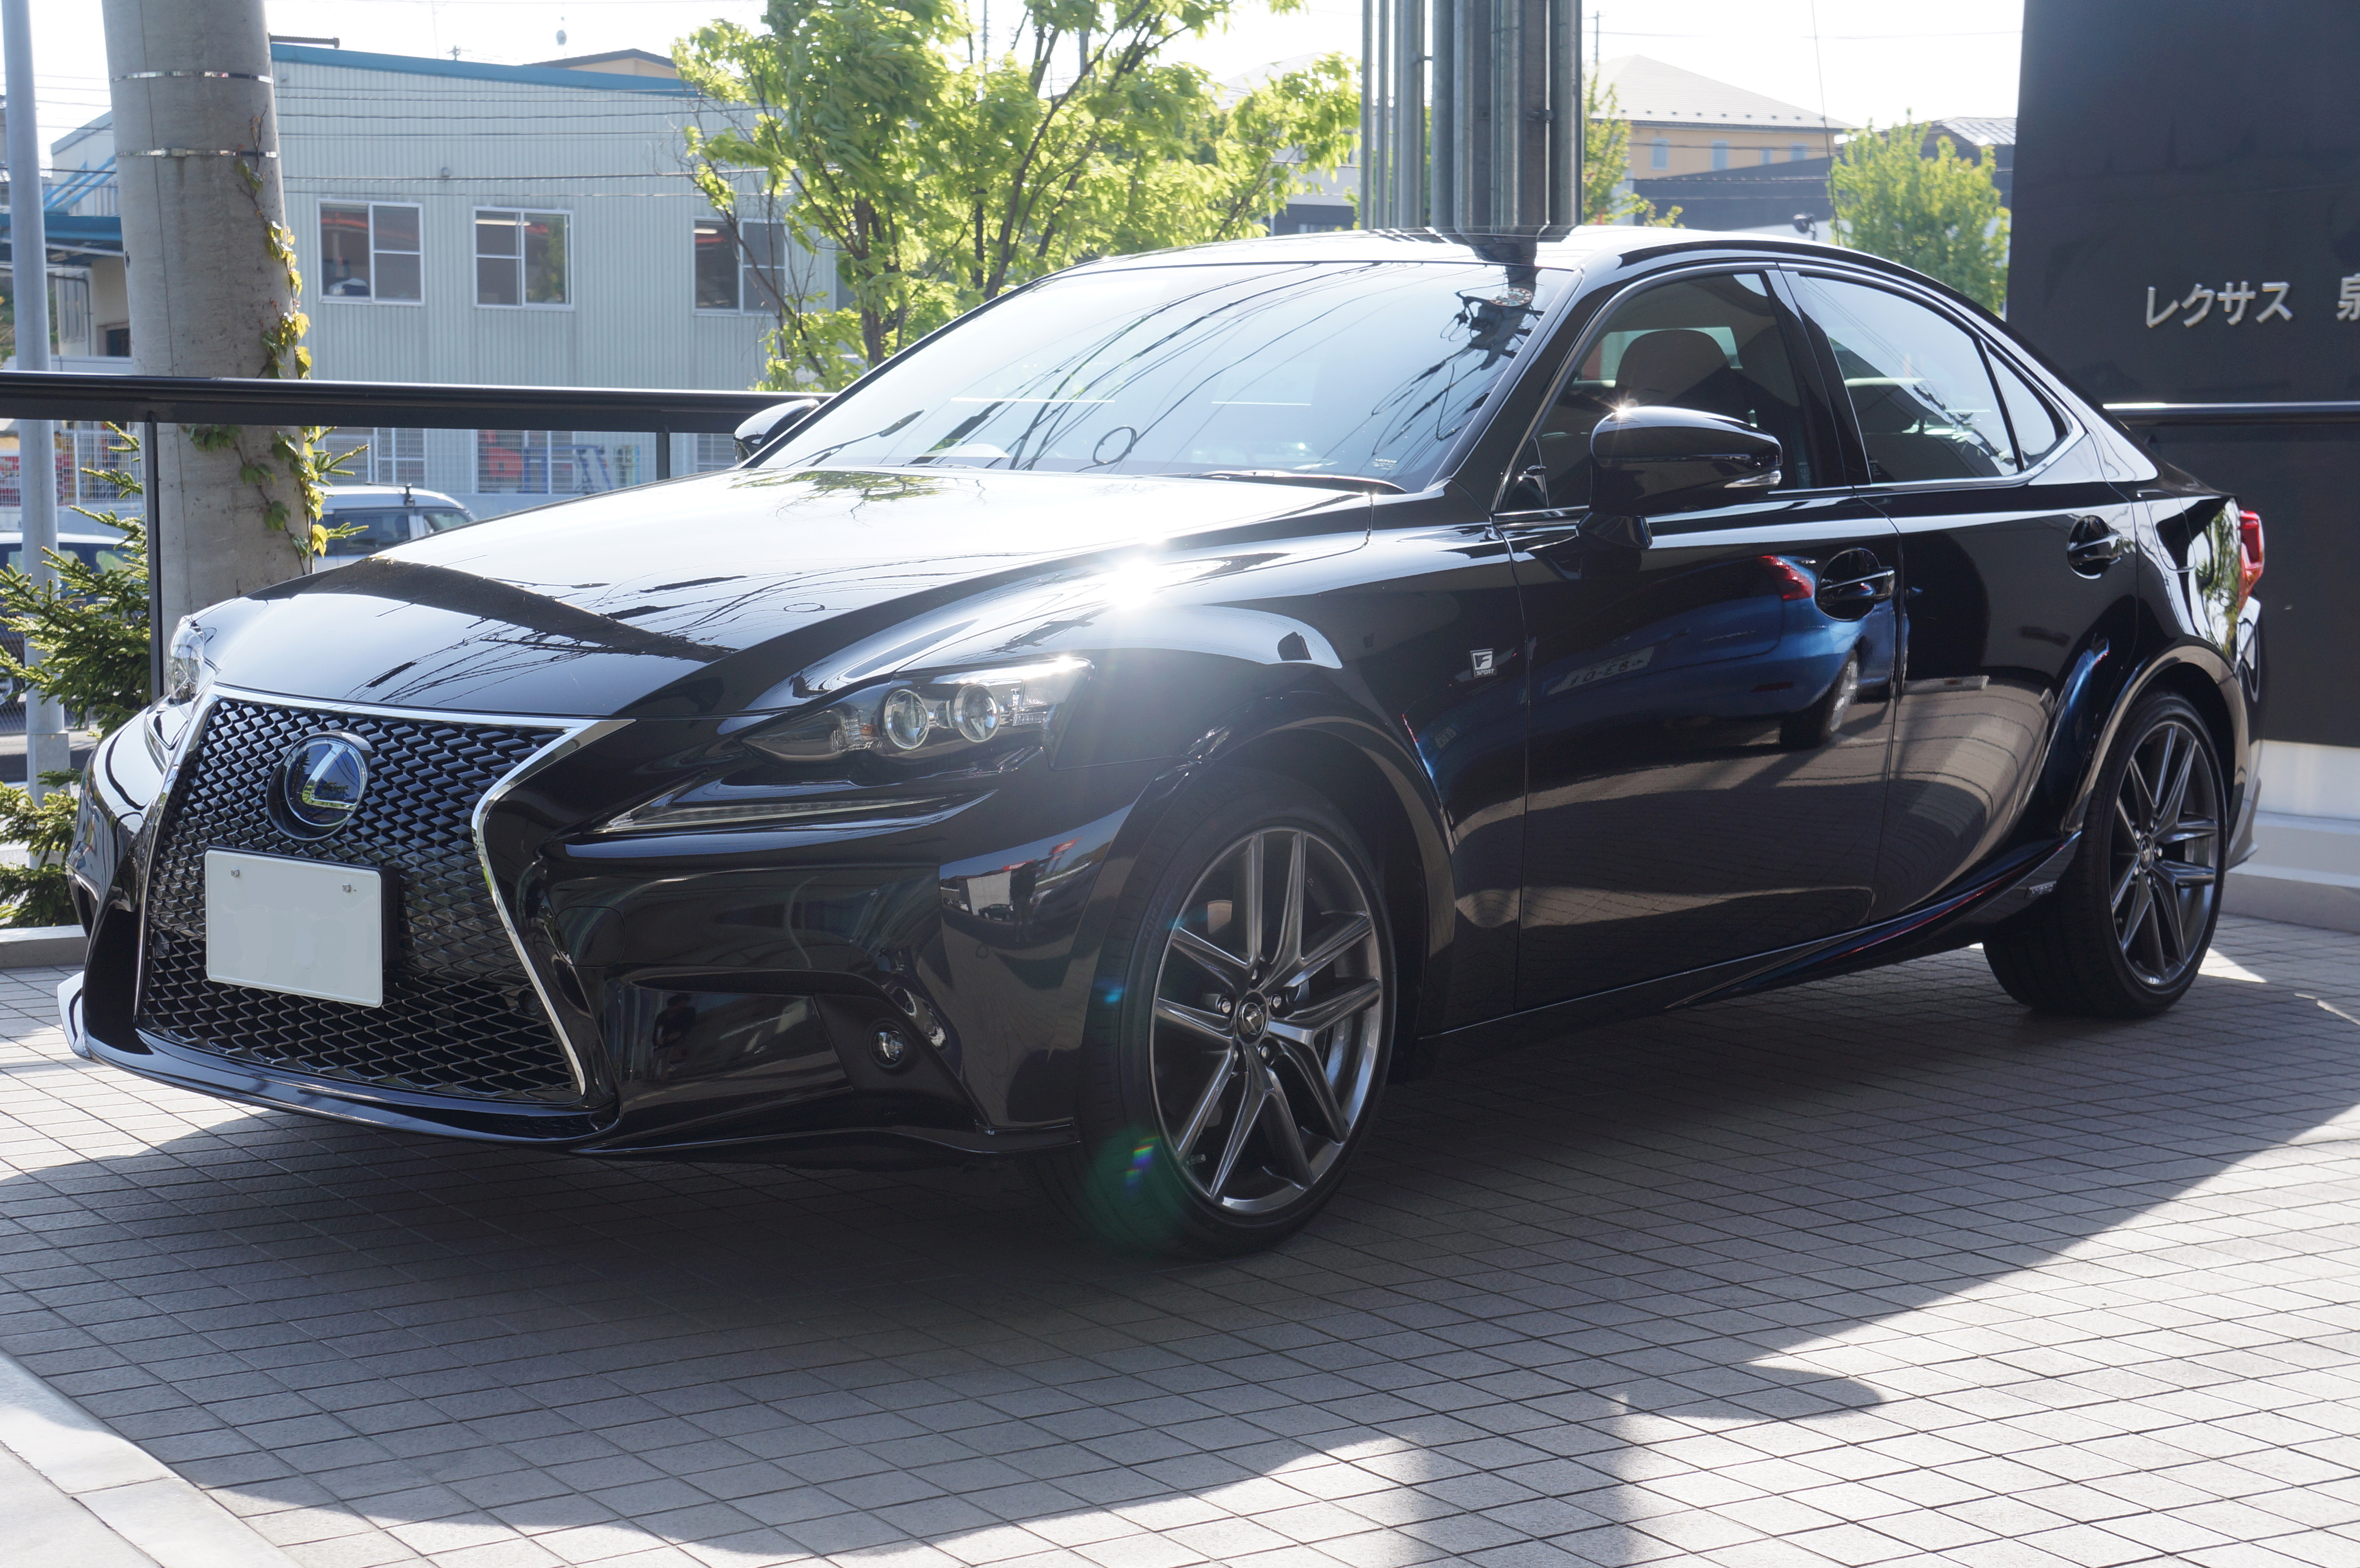 rc cars for free with File Lexus Is300h Fsport 2013 Japan Front on 1404 2014 Lexus Rc Coupe in addition Build The Battleship Yamato additionally Golden Hind additionally Interview With Chasing Classic Cars Wayne Carini in addition barrywhitesrrc.